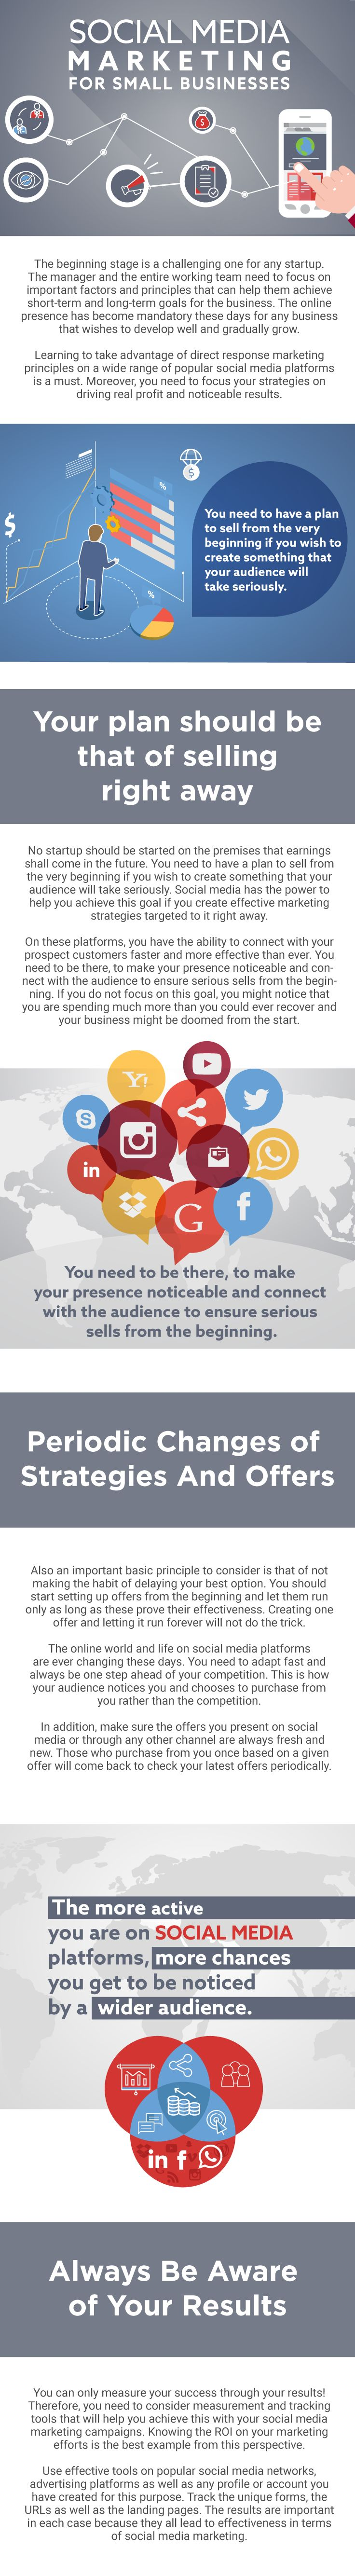 #SocialMedia #Marketing #SmallBusiness #Design #infographic